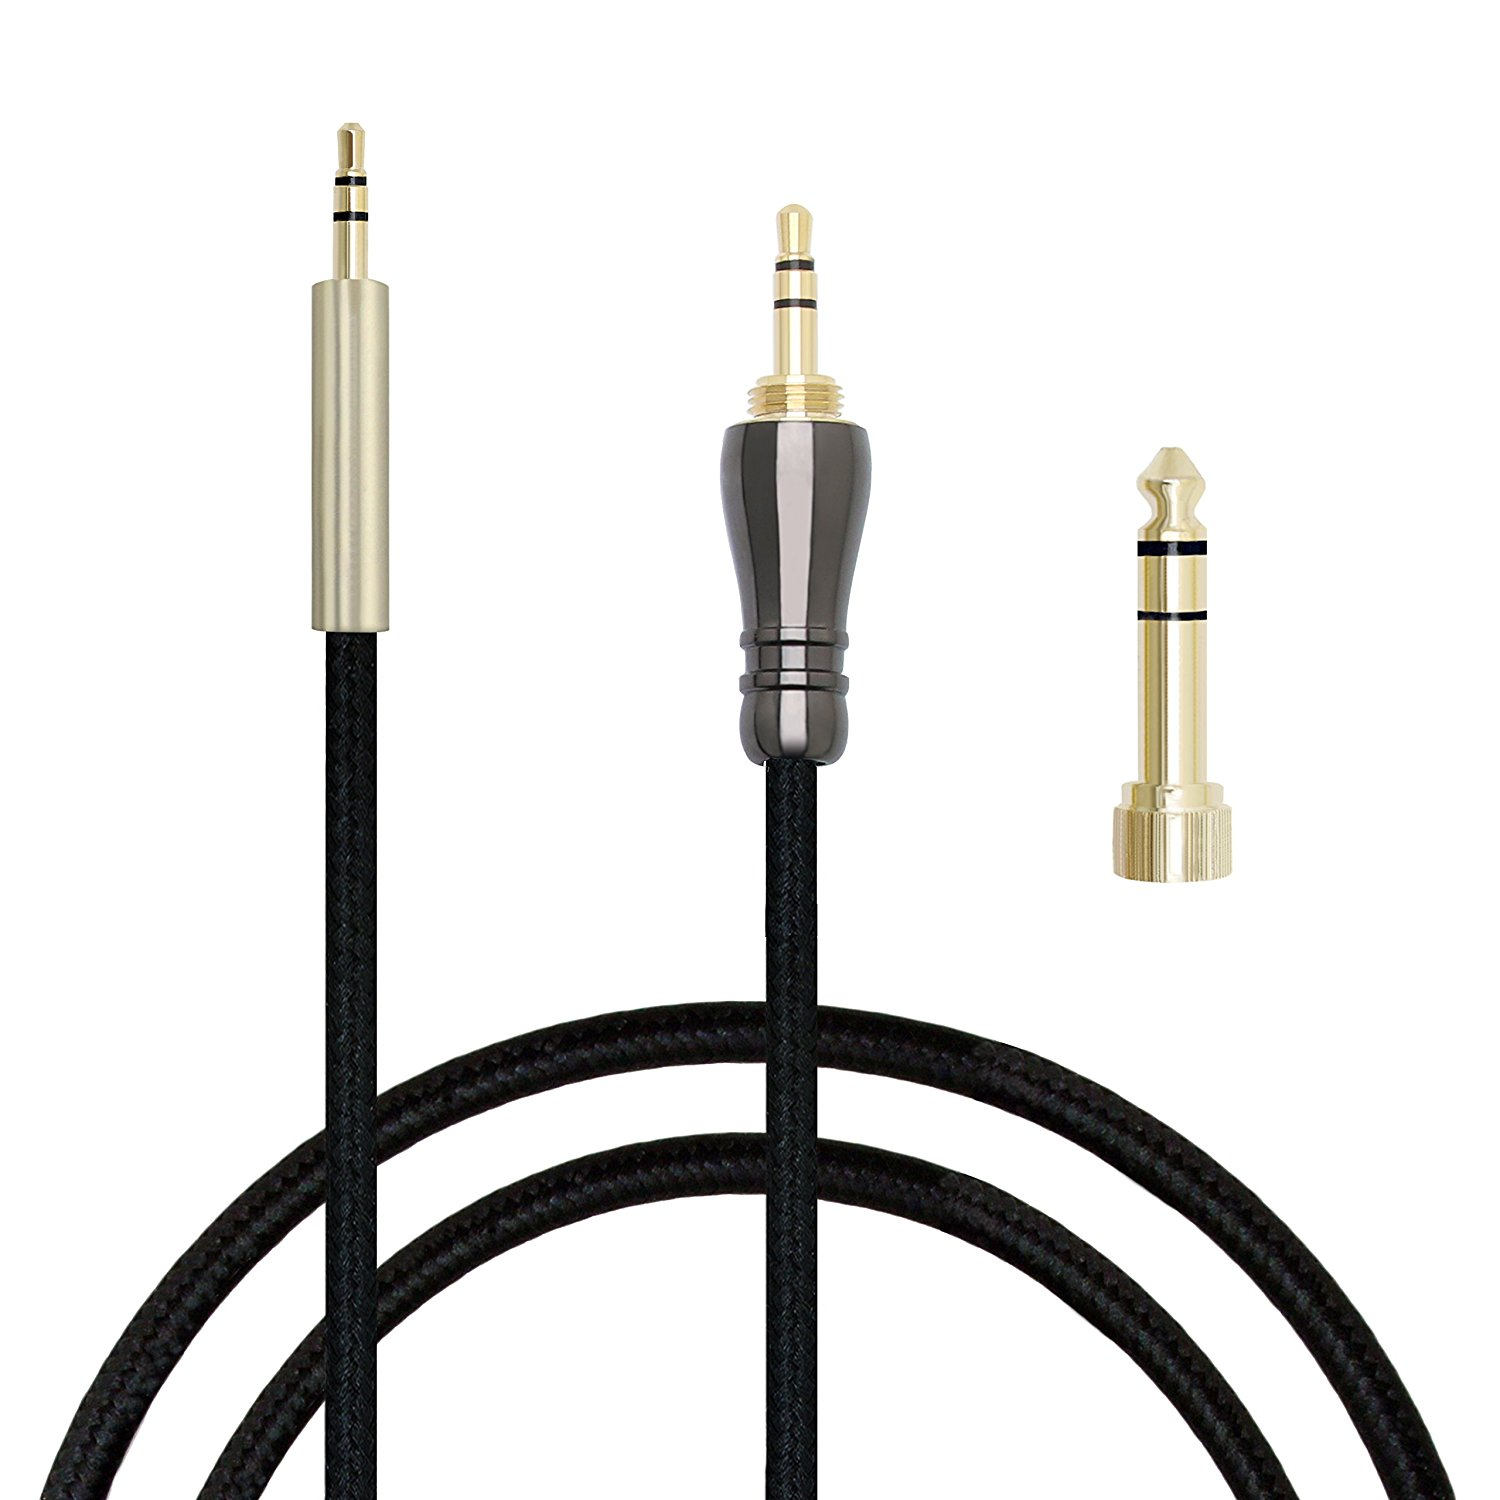 MiCity 4 Replacement Audio Extension Cable Upgrade Cable For AKG Y40 Y45BT Y55 Y50BT Y50 K840KL K840 K830BT K830 Headphones (1.2m)